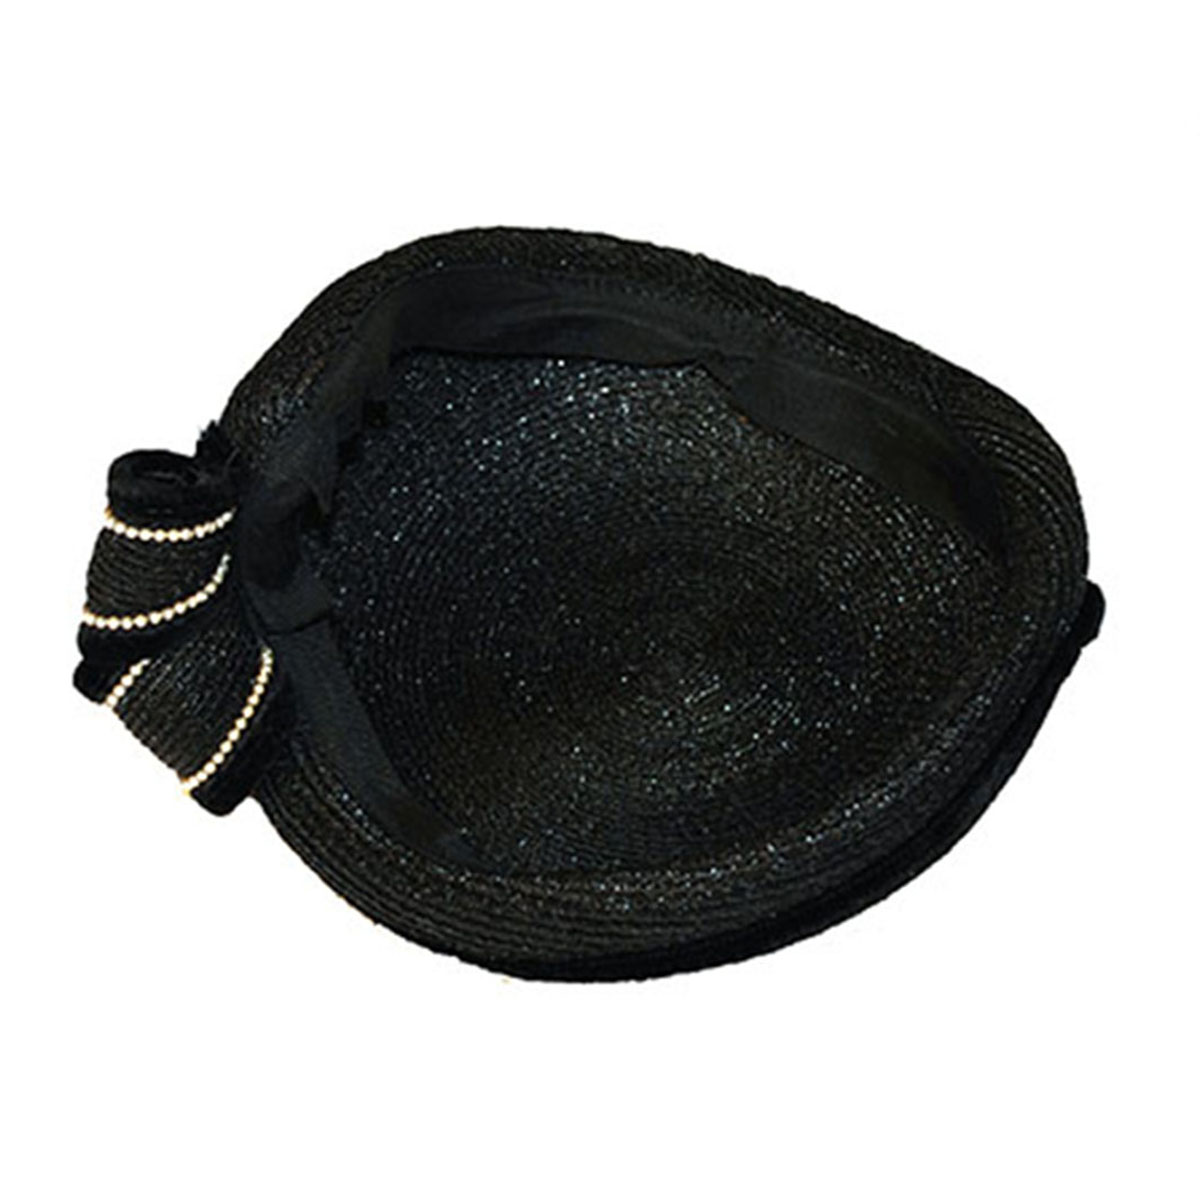 hat with pearls